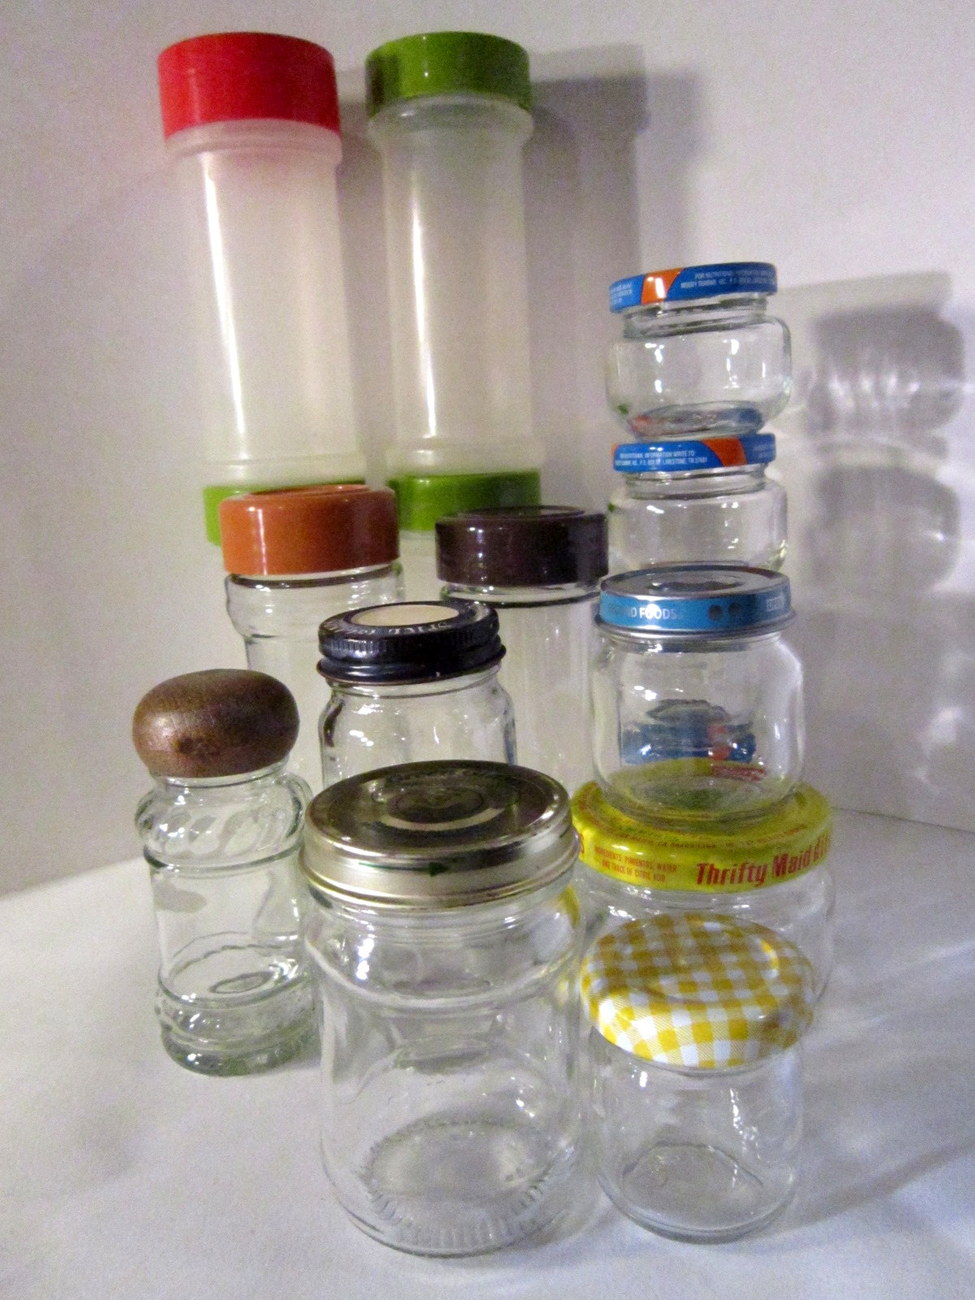 Small bottles for herbs and spices jars with lids for diy for Diy bottles and jars